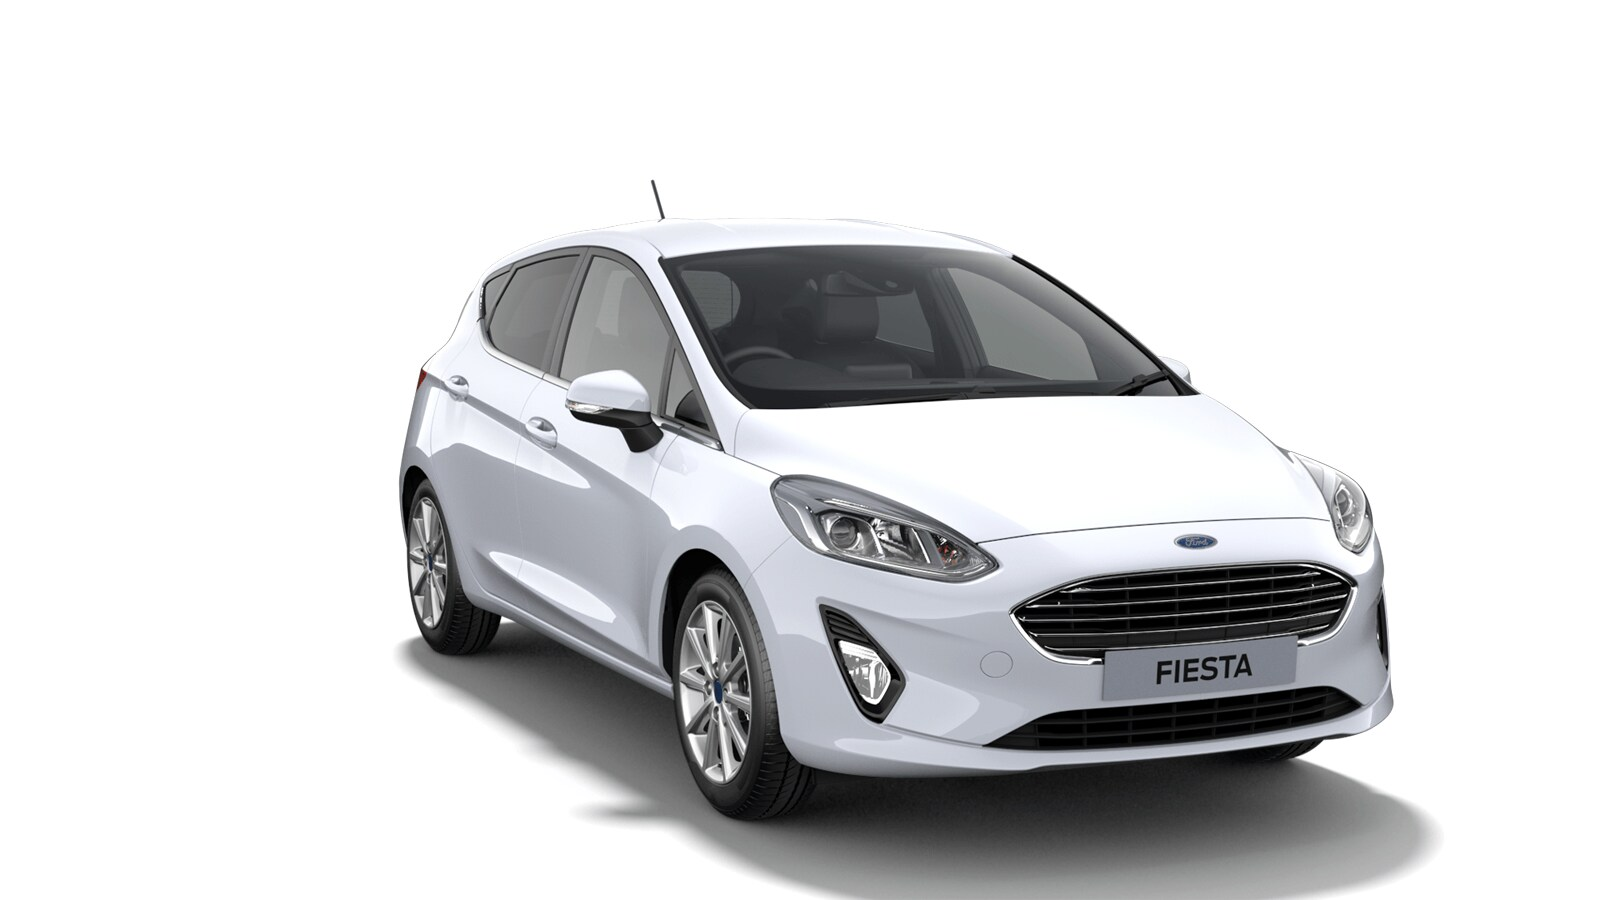 Ford Fiesta Titanium 1.0L EcoBoost 95PS at Browne & Day